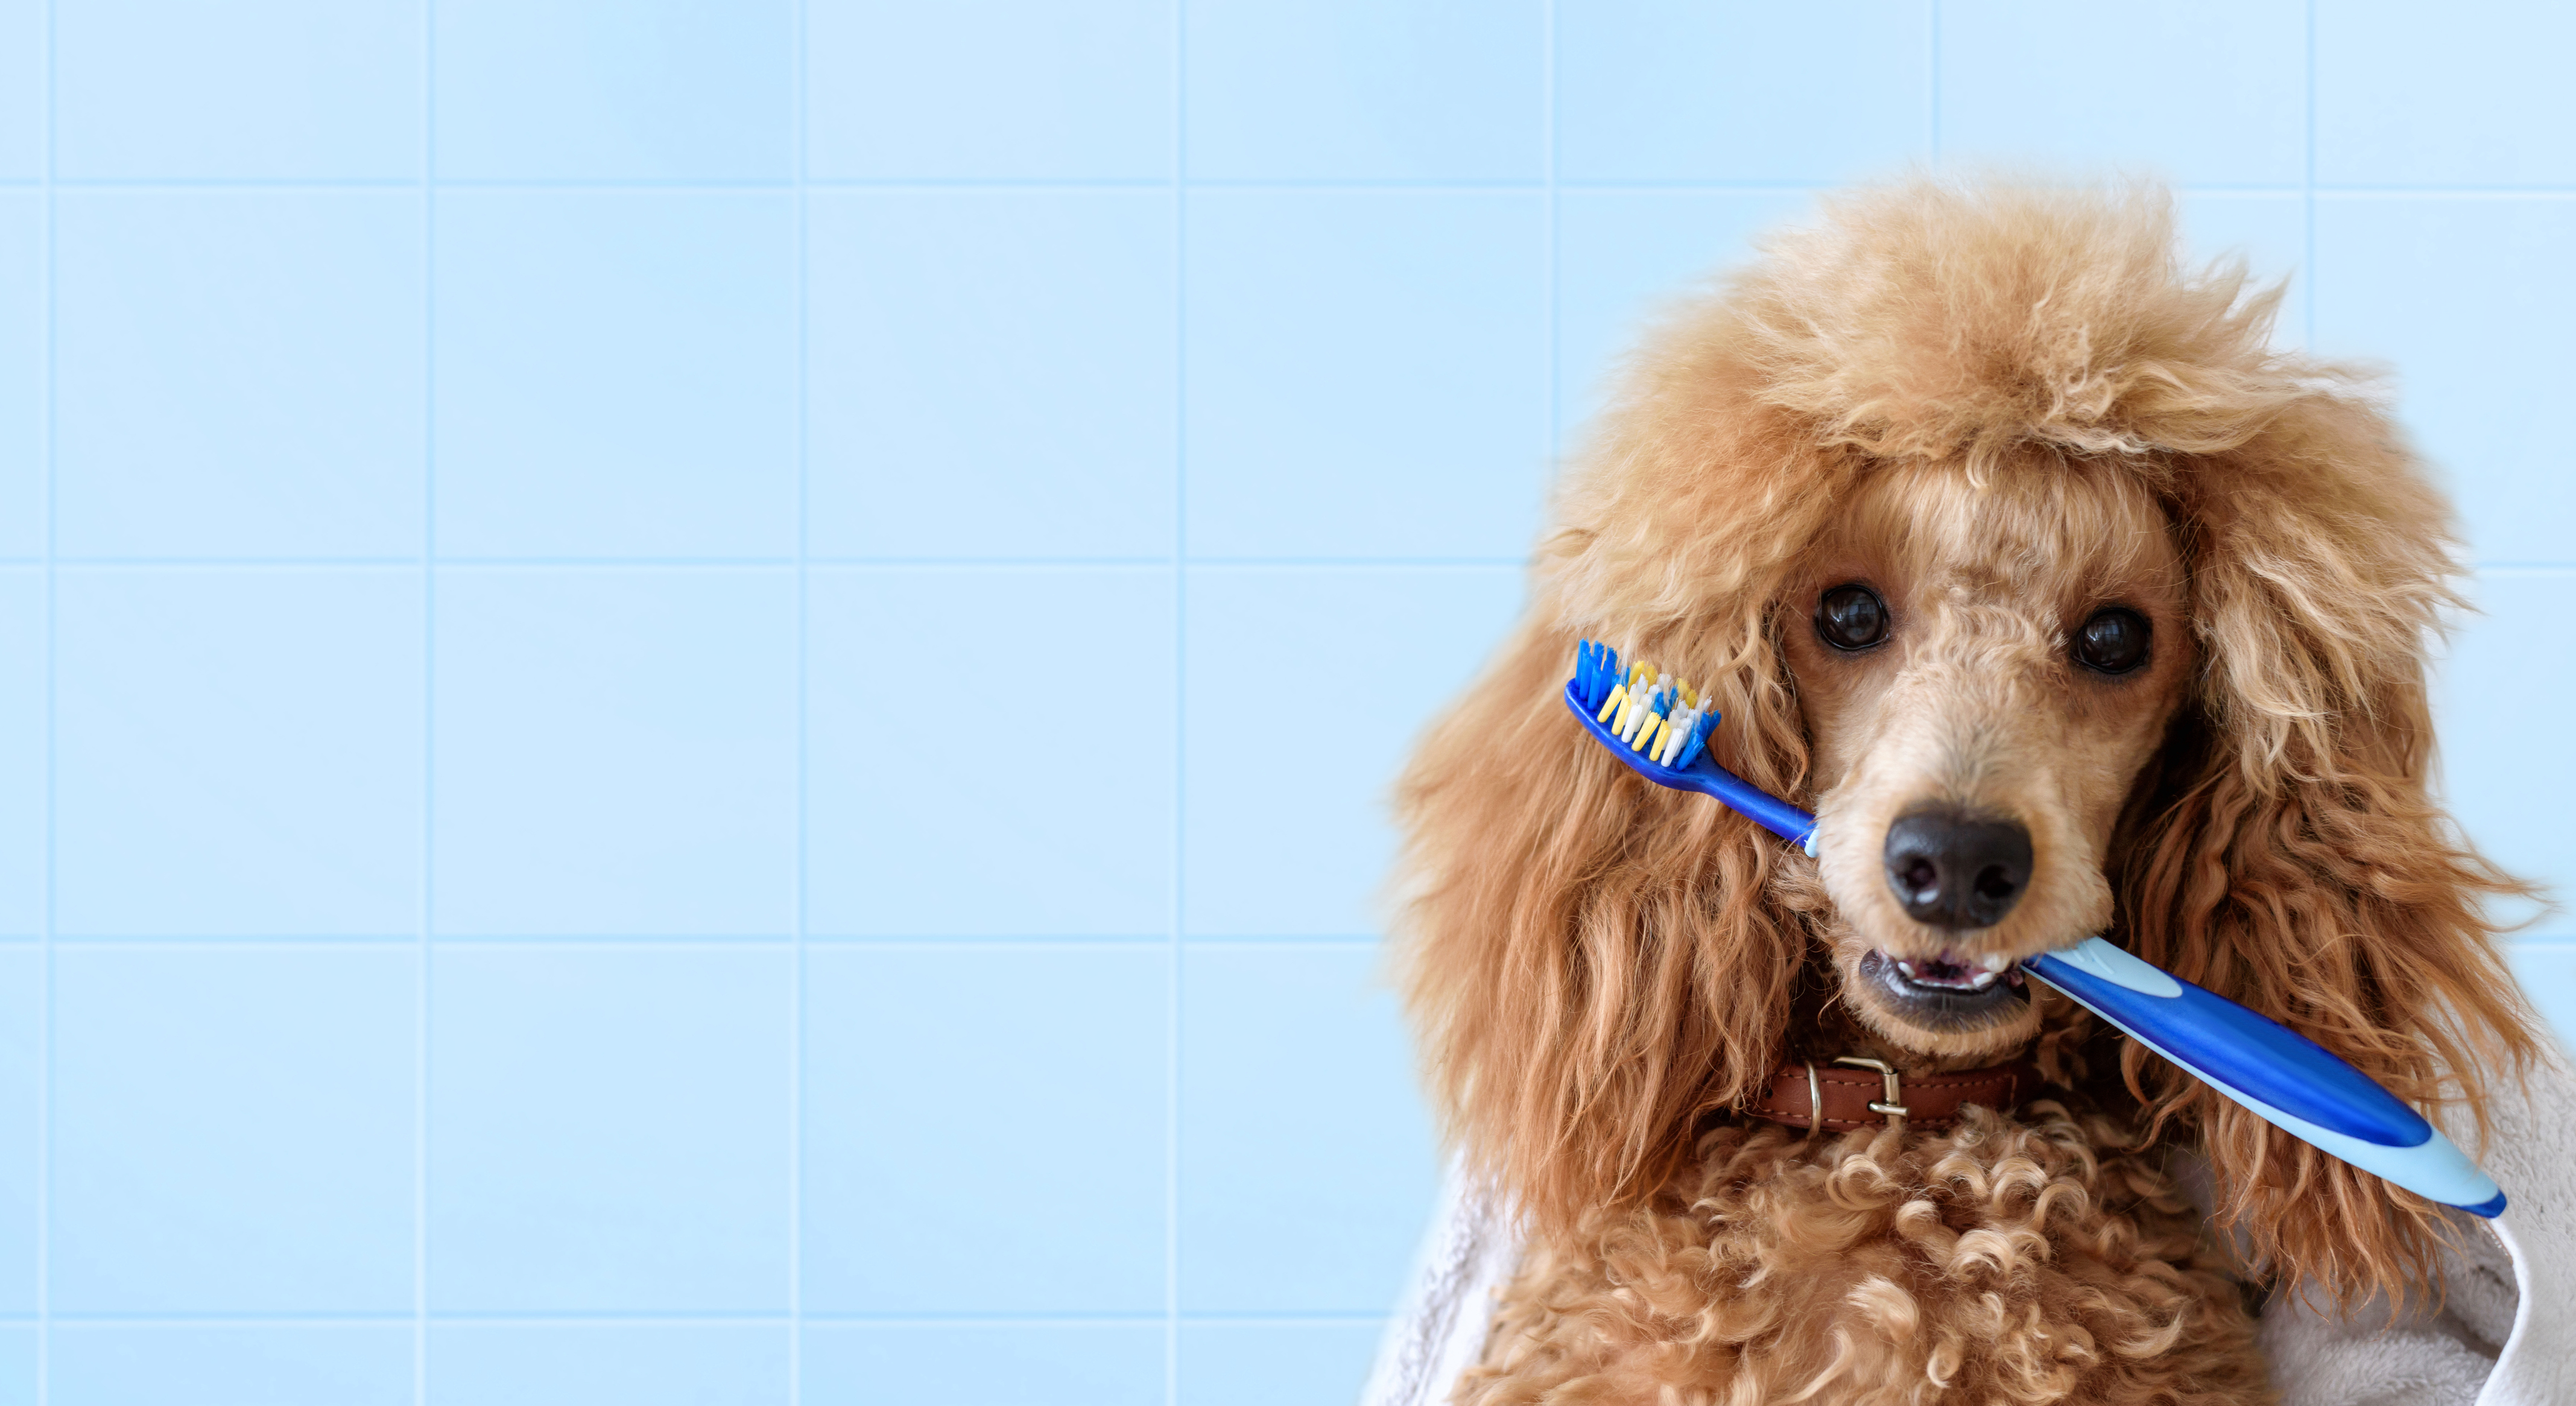 Poodle-type dog holding a toothbrush in its mouth - prevent bad dog breath